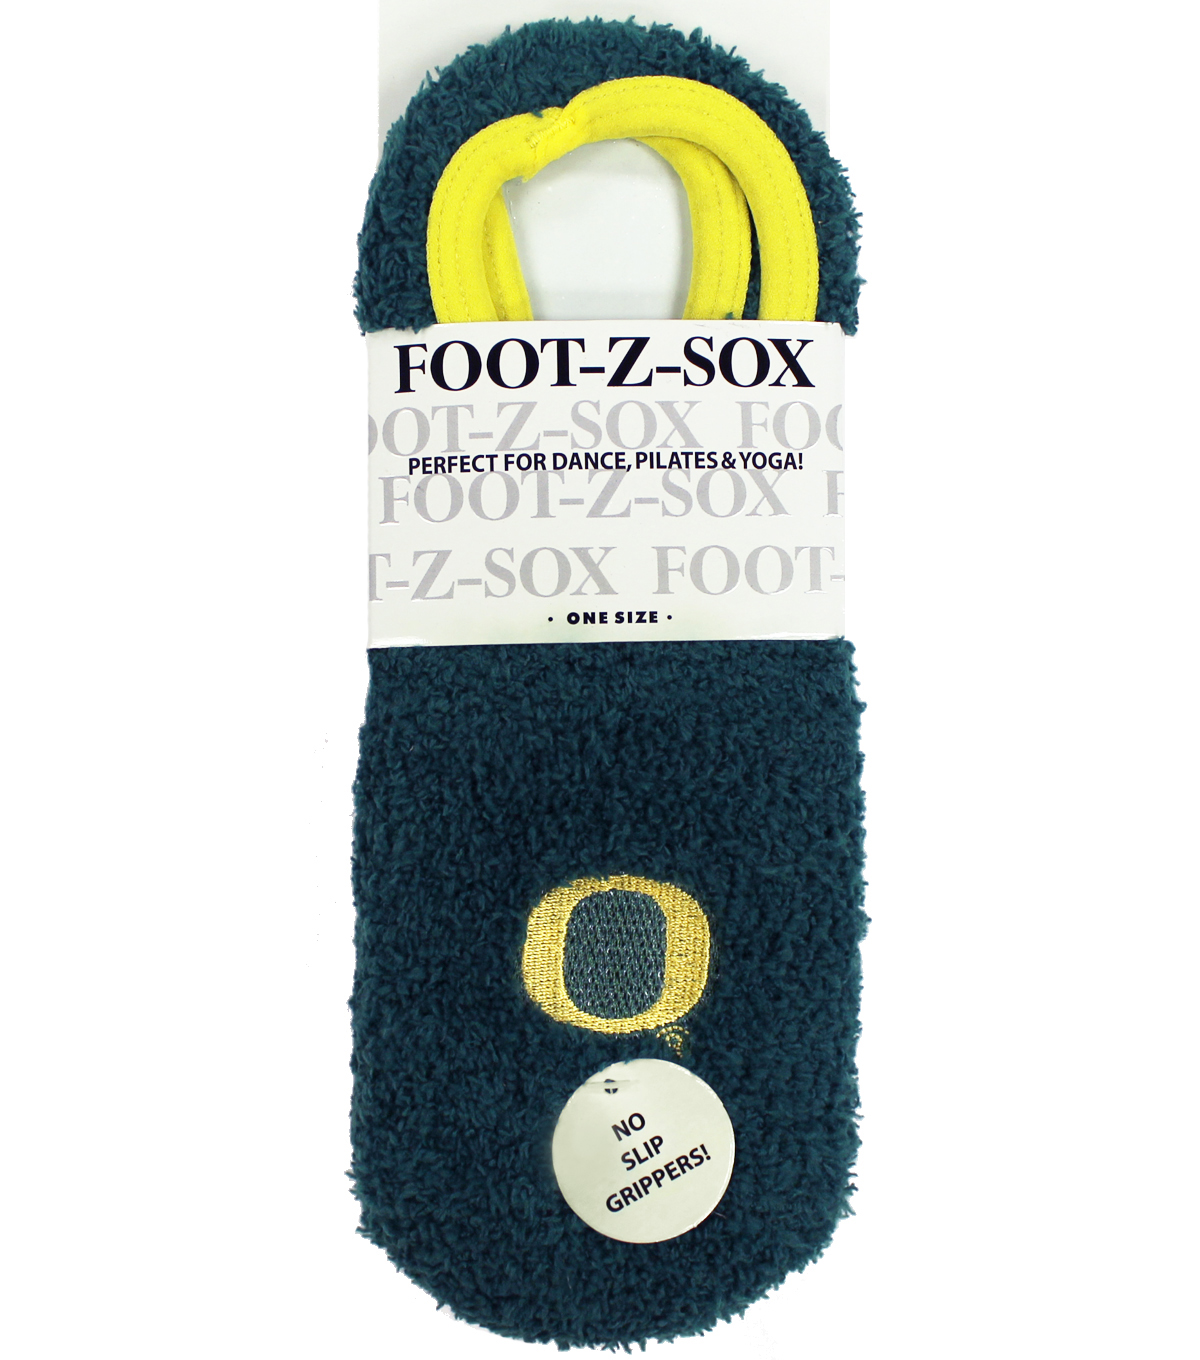 University of Oregon Foot-Z-Sox